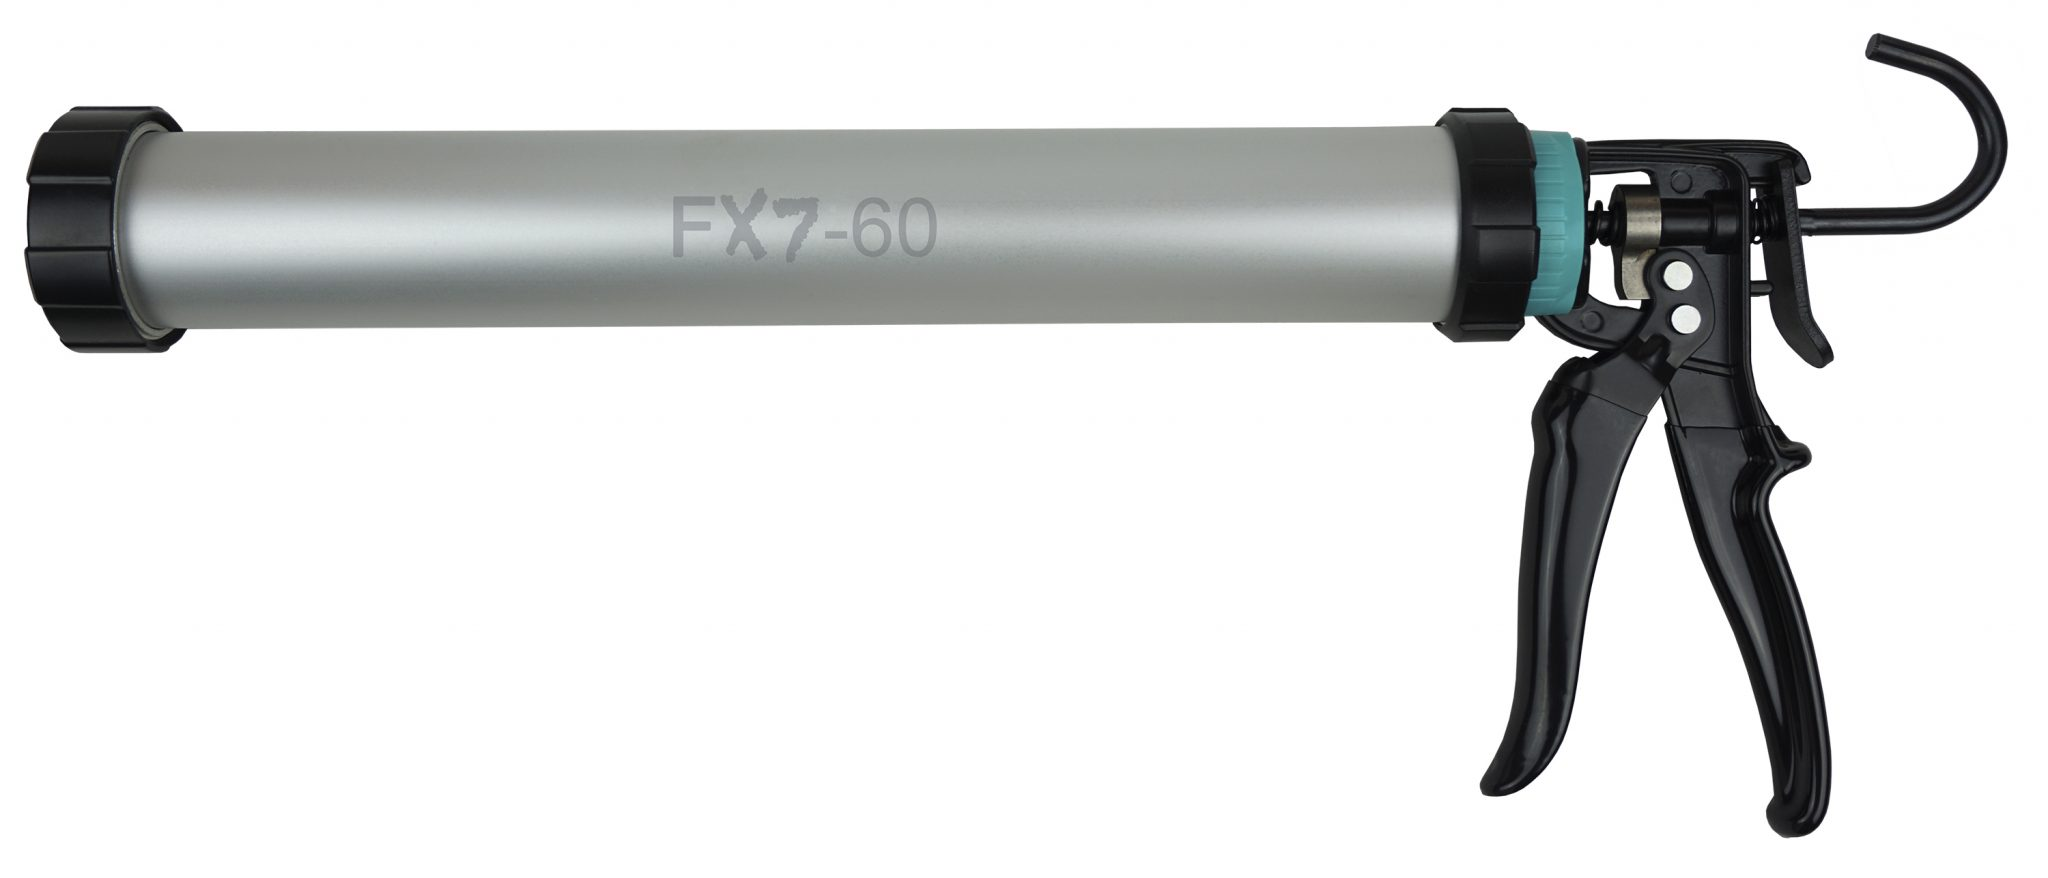 Aluminum Barrel Applicator FX7-60